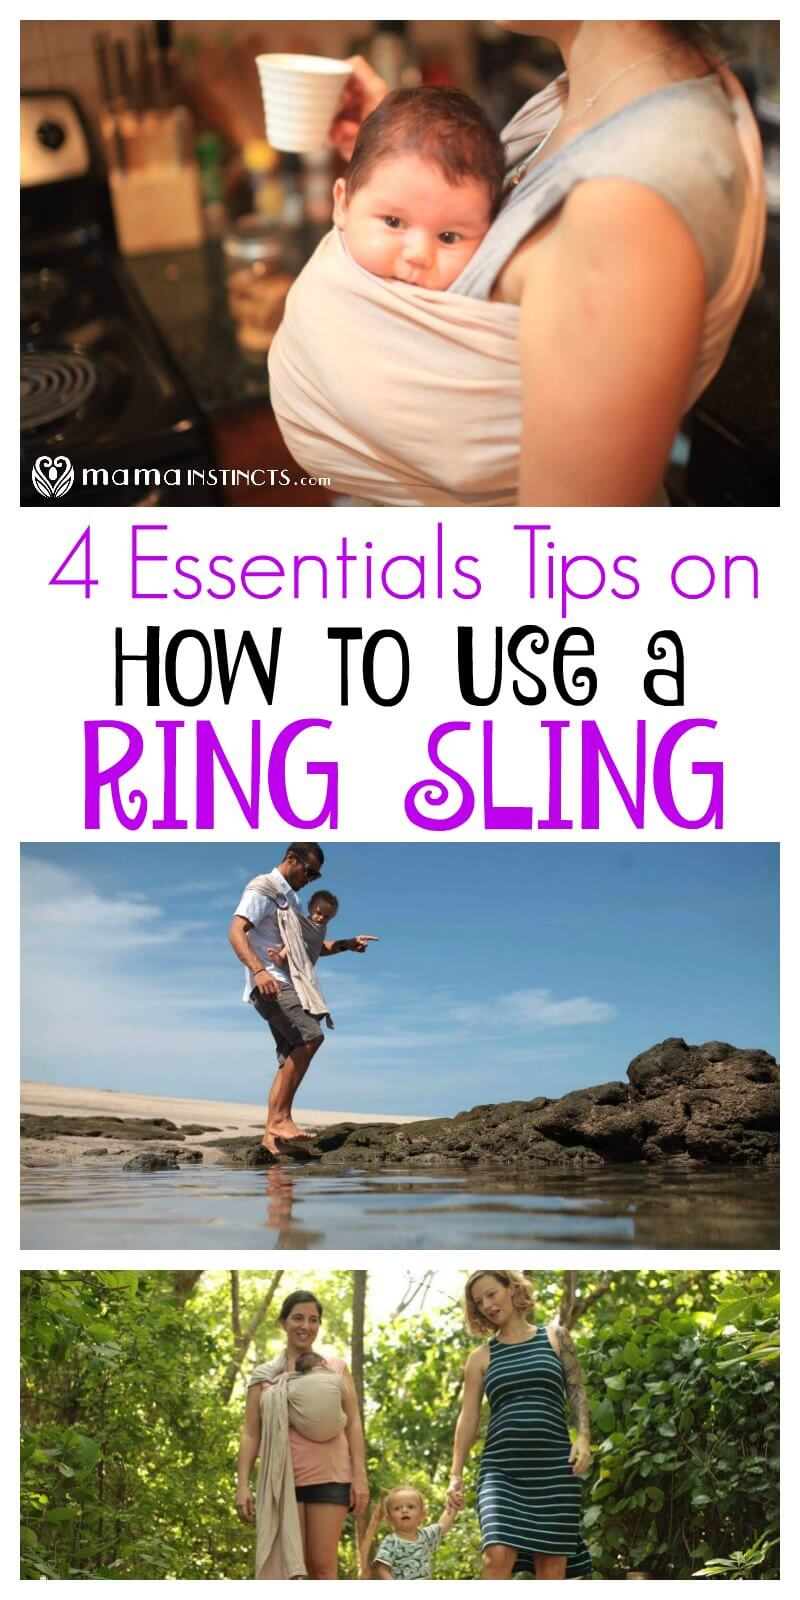 4 Essentials Tips On How To Use A Ring Sling Babycarrier Mama